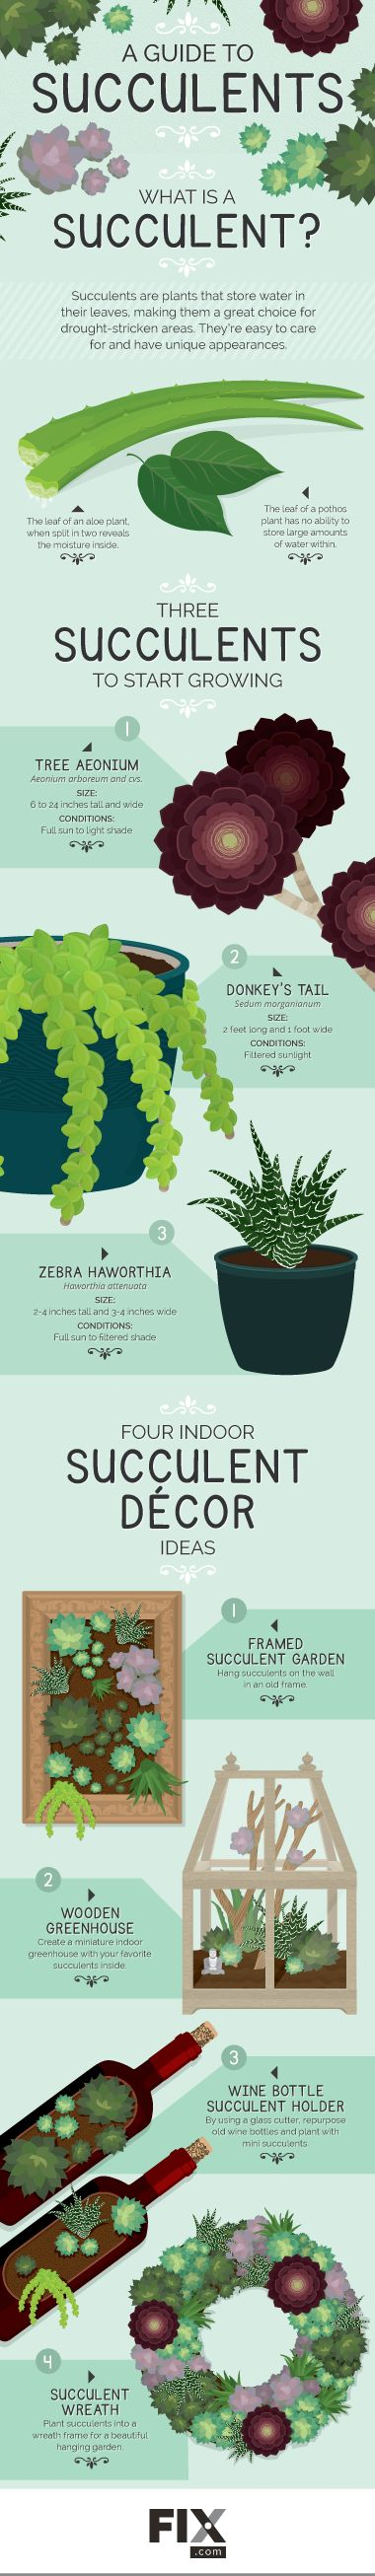 Gardening With Succulent Plants | Fix.com